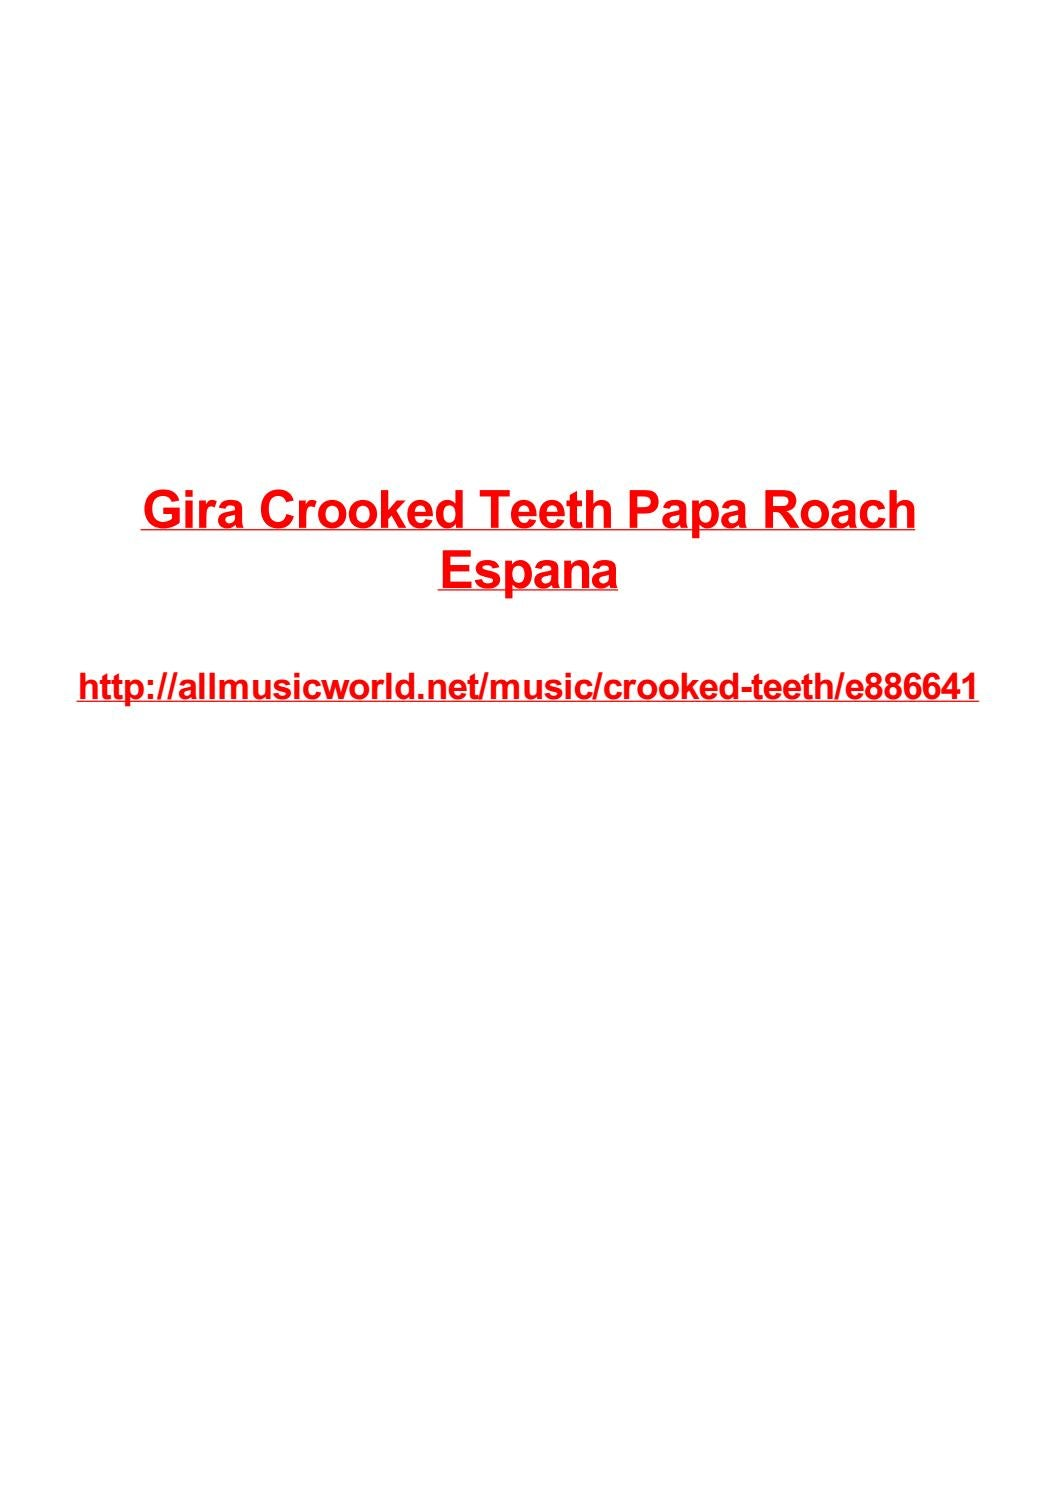 Gira crooked teeth papa roach espana by Max Polansky - issuu